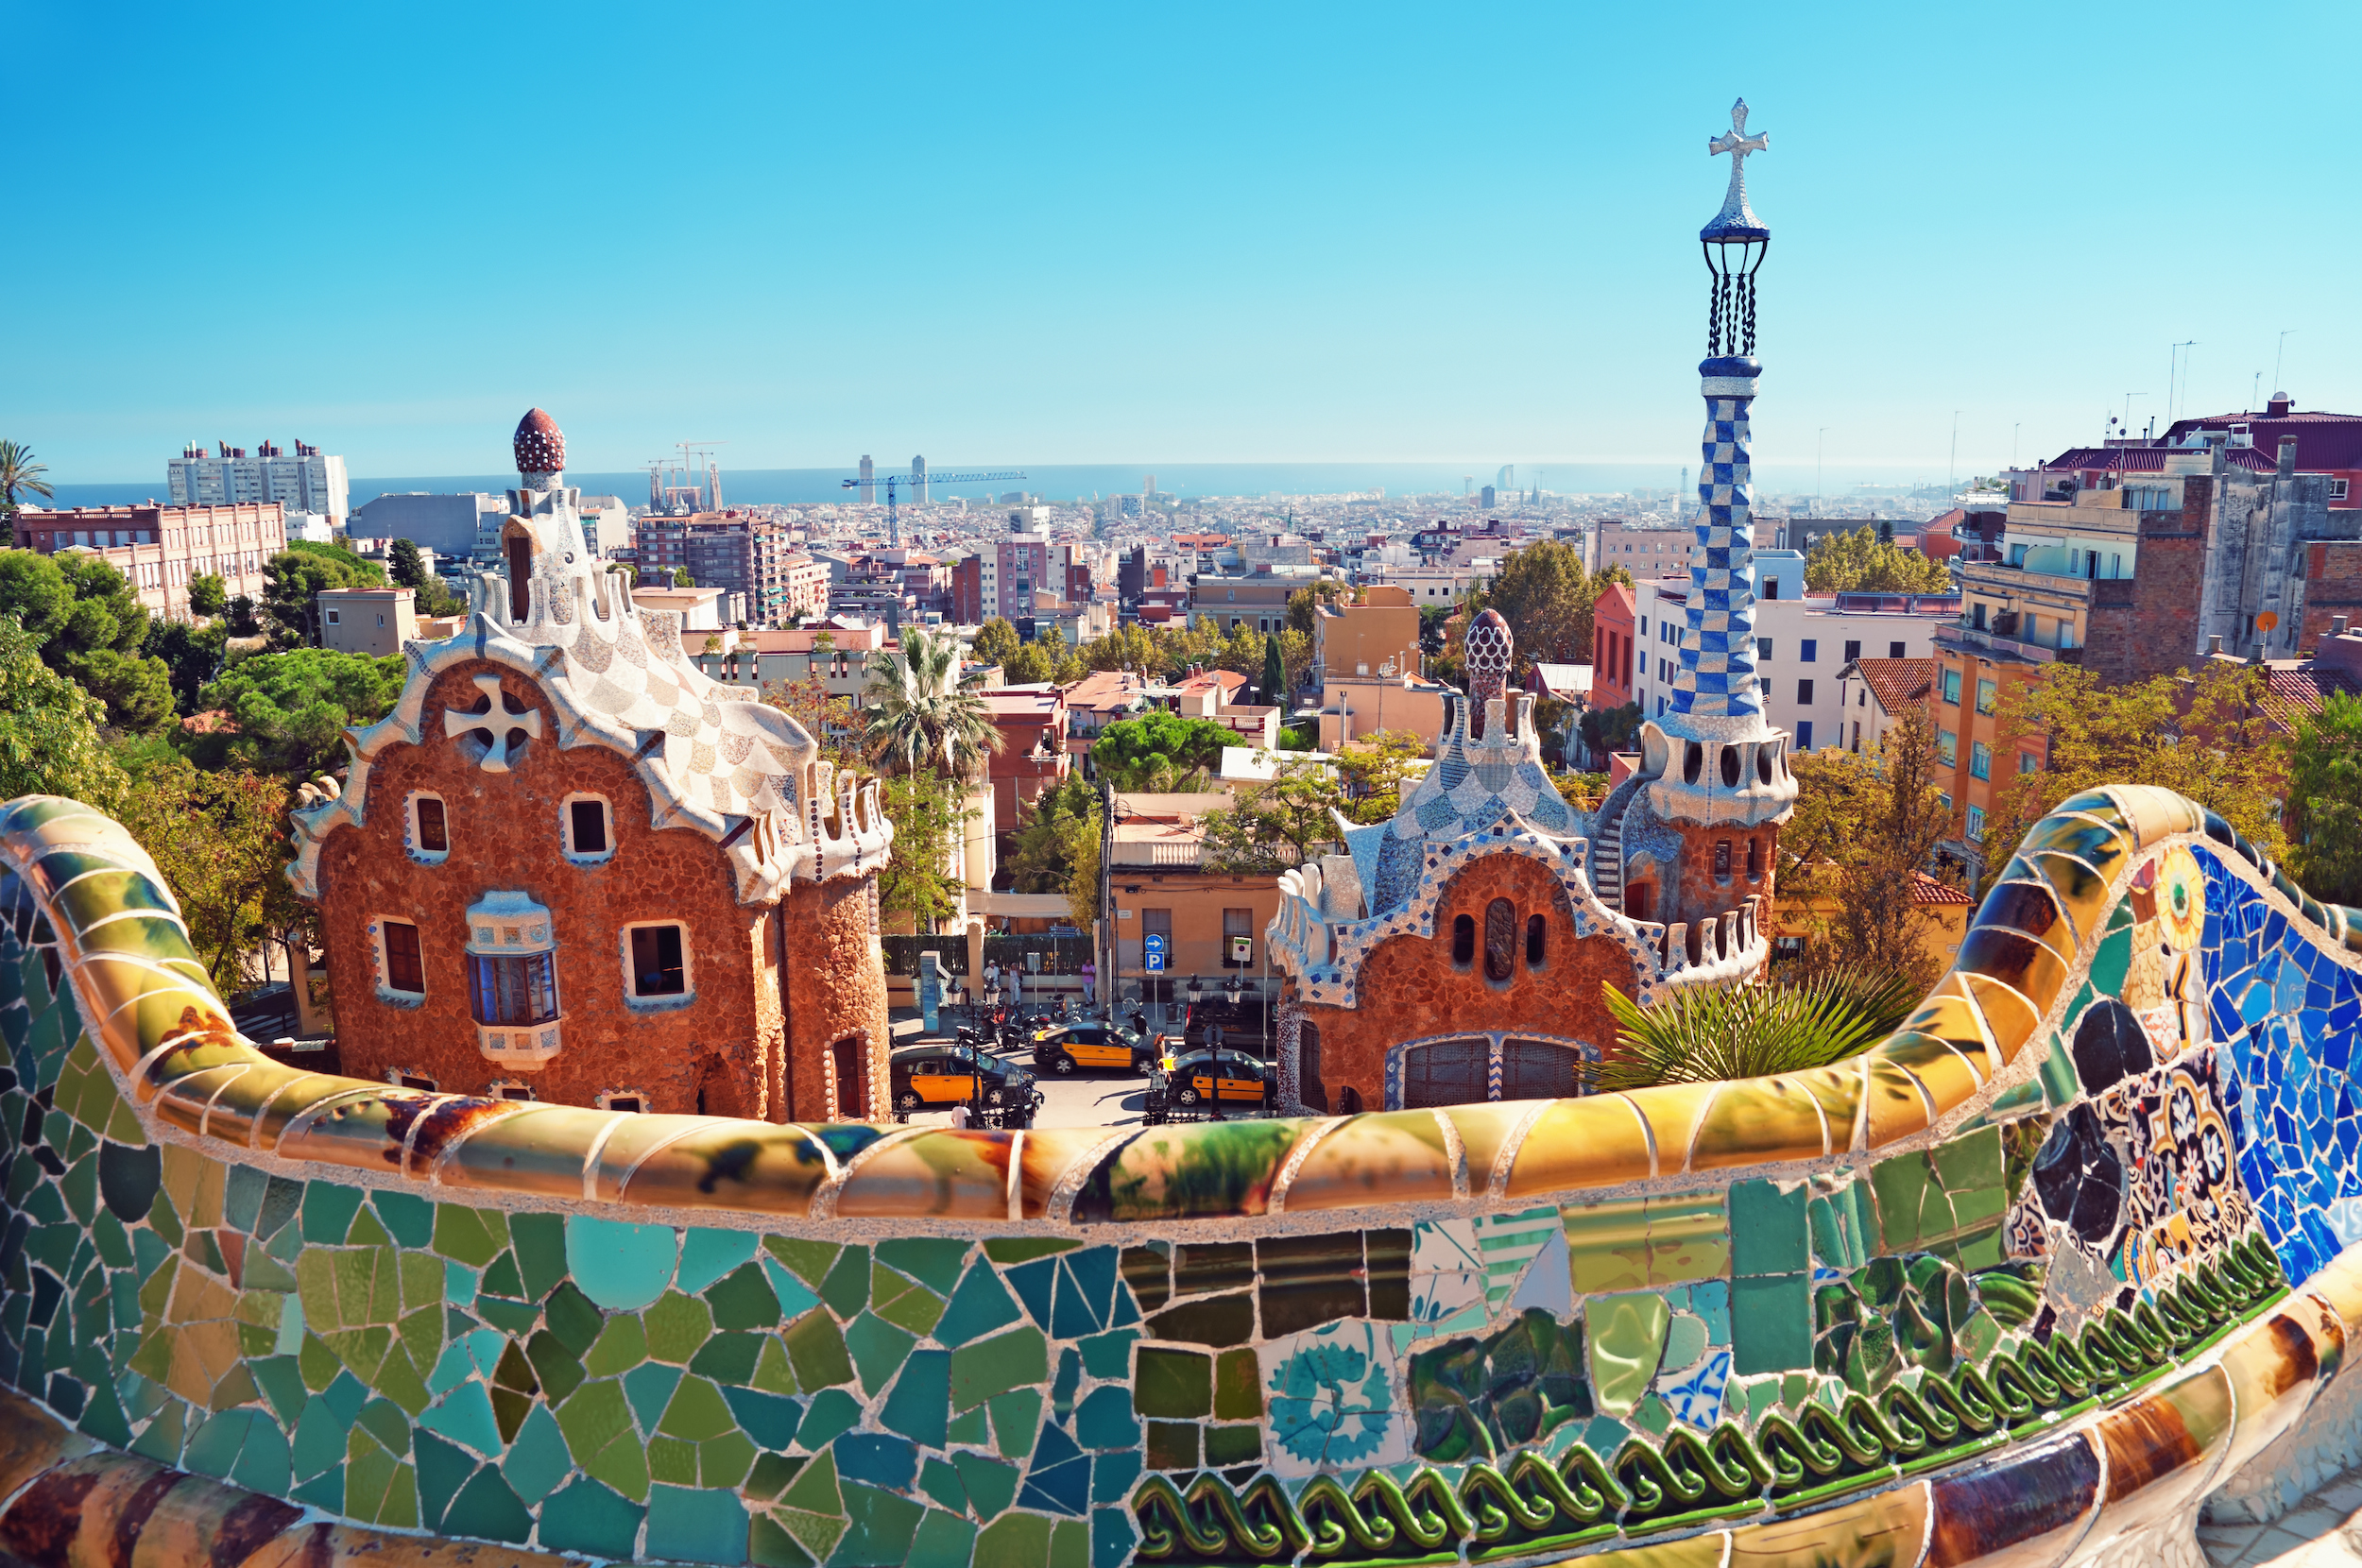 From from a multicoloured, tiled balcony overlooking the city of Barcelona